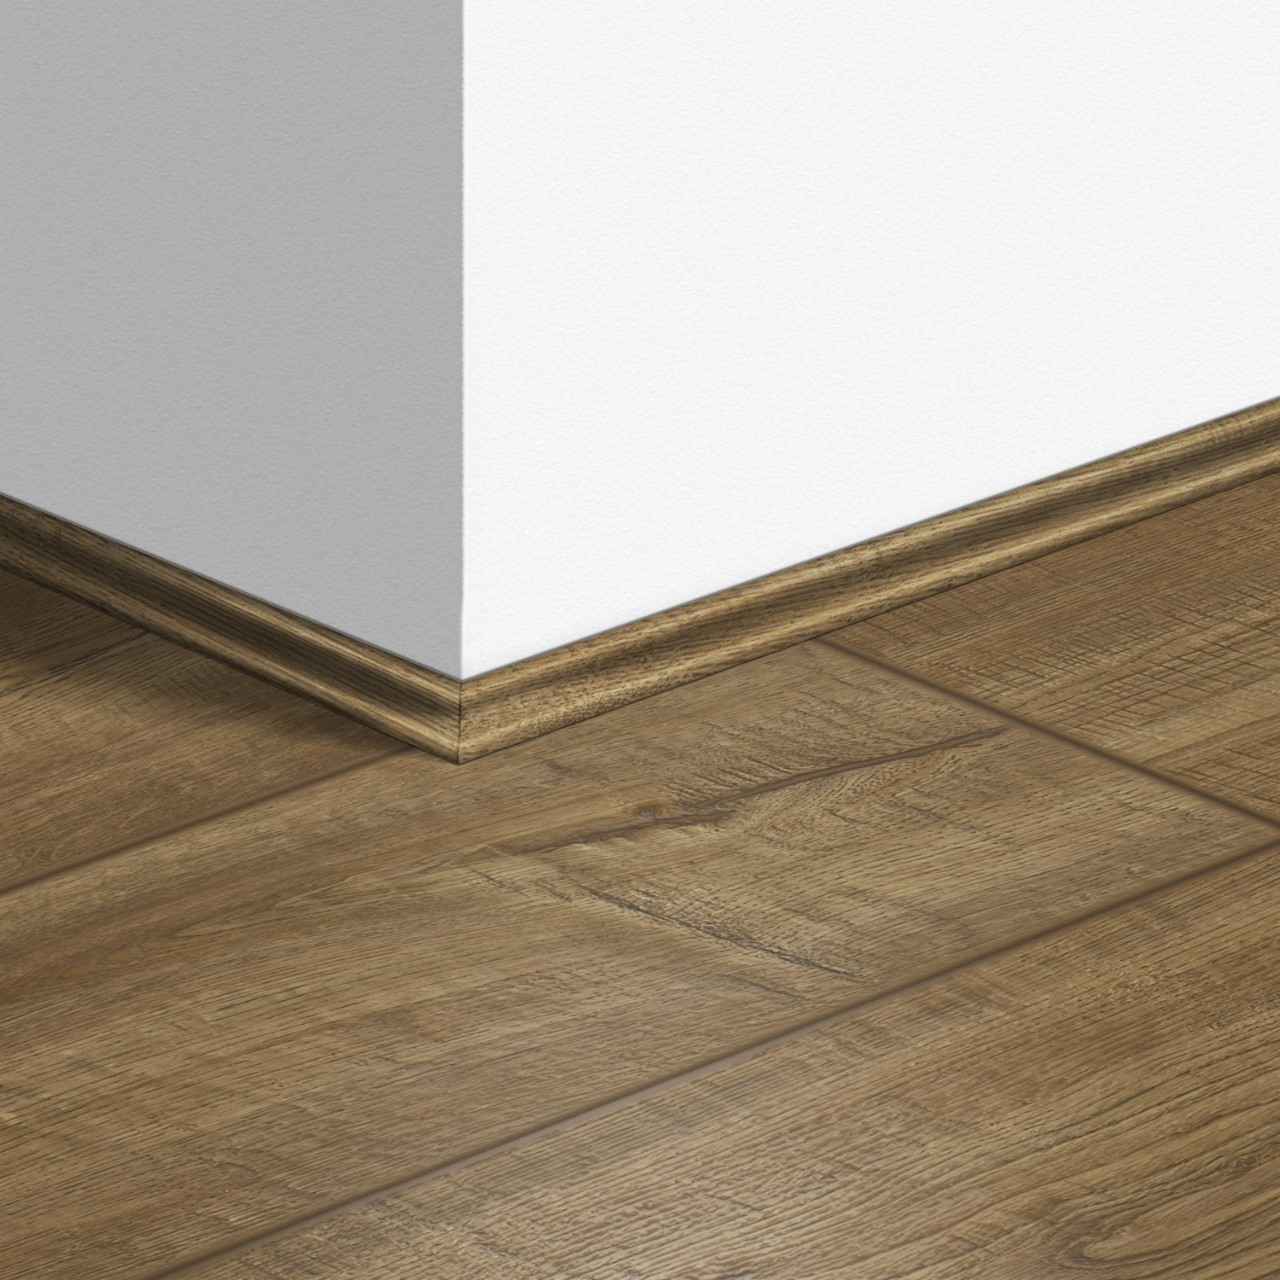 QSSCOT Laminate Accessories Scraped oak grey brown QSSCOT01850